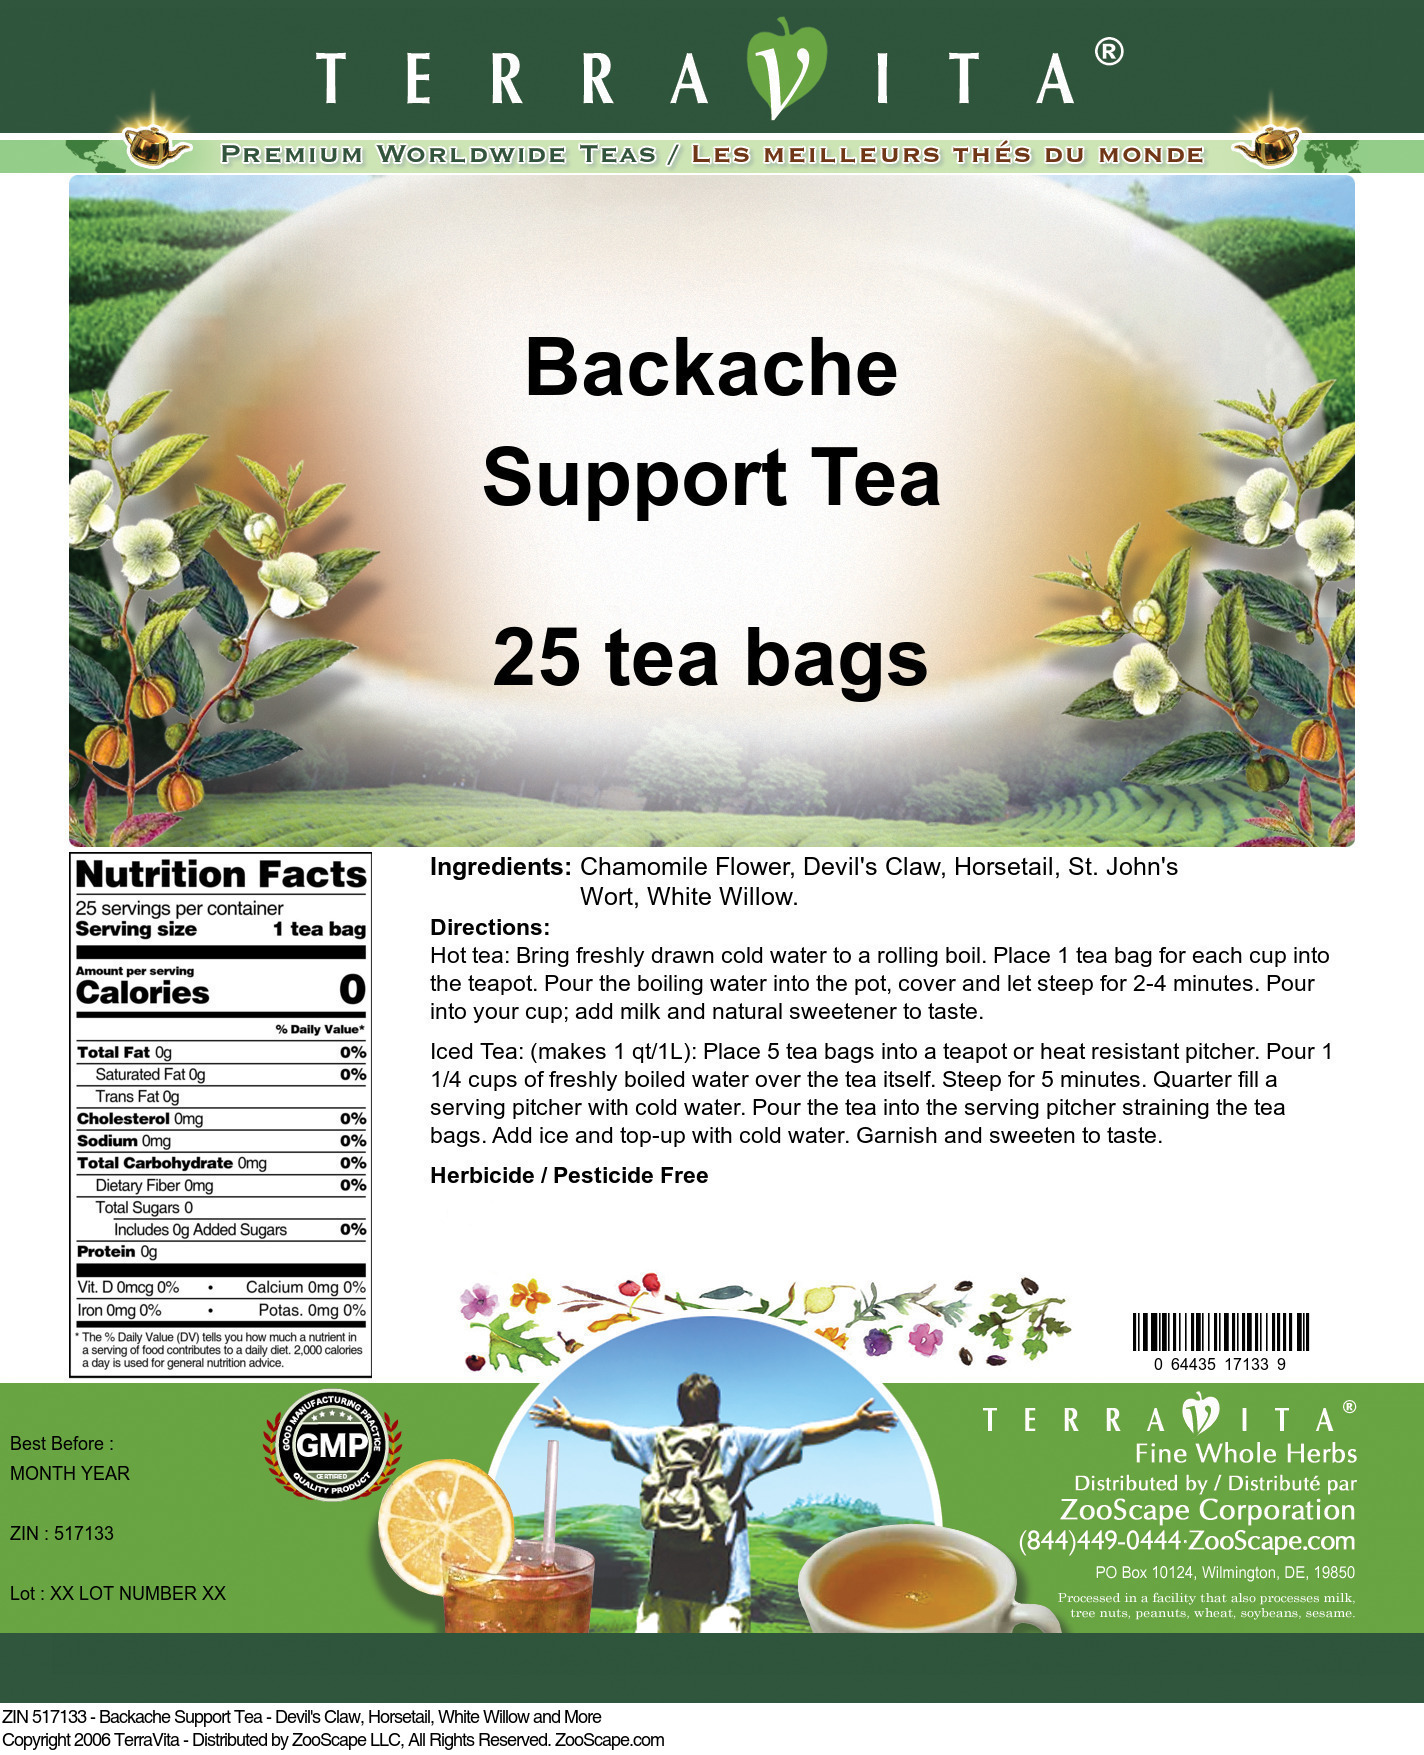 Backache Support Tea - Devil's Claw, Horsetail, White Willow and More